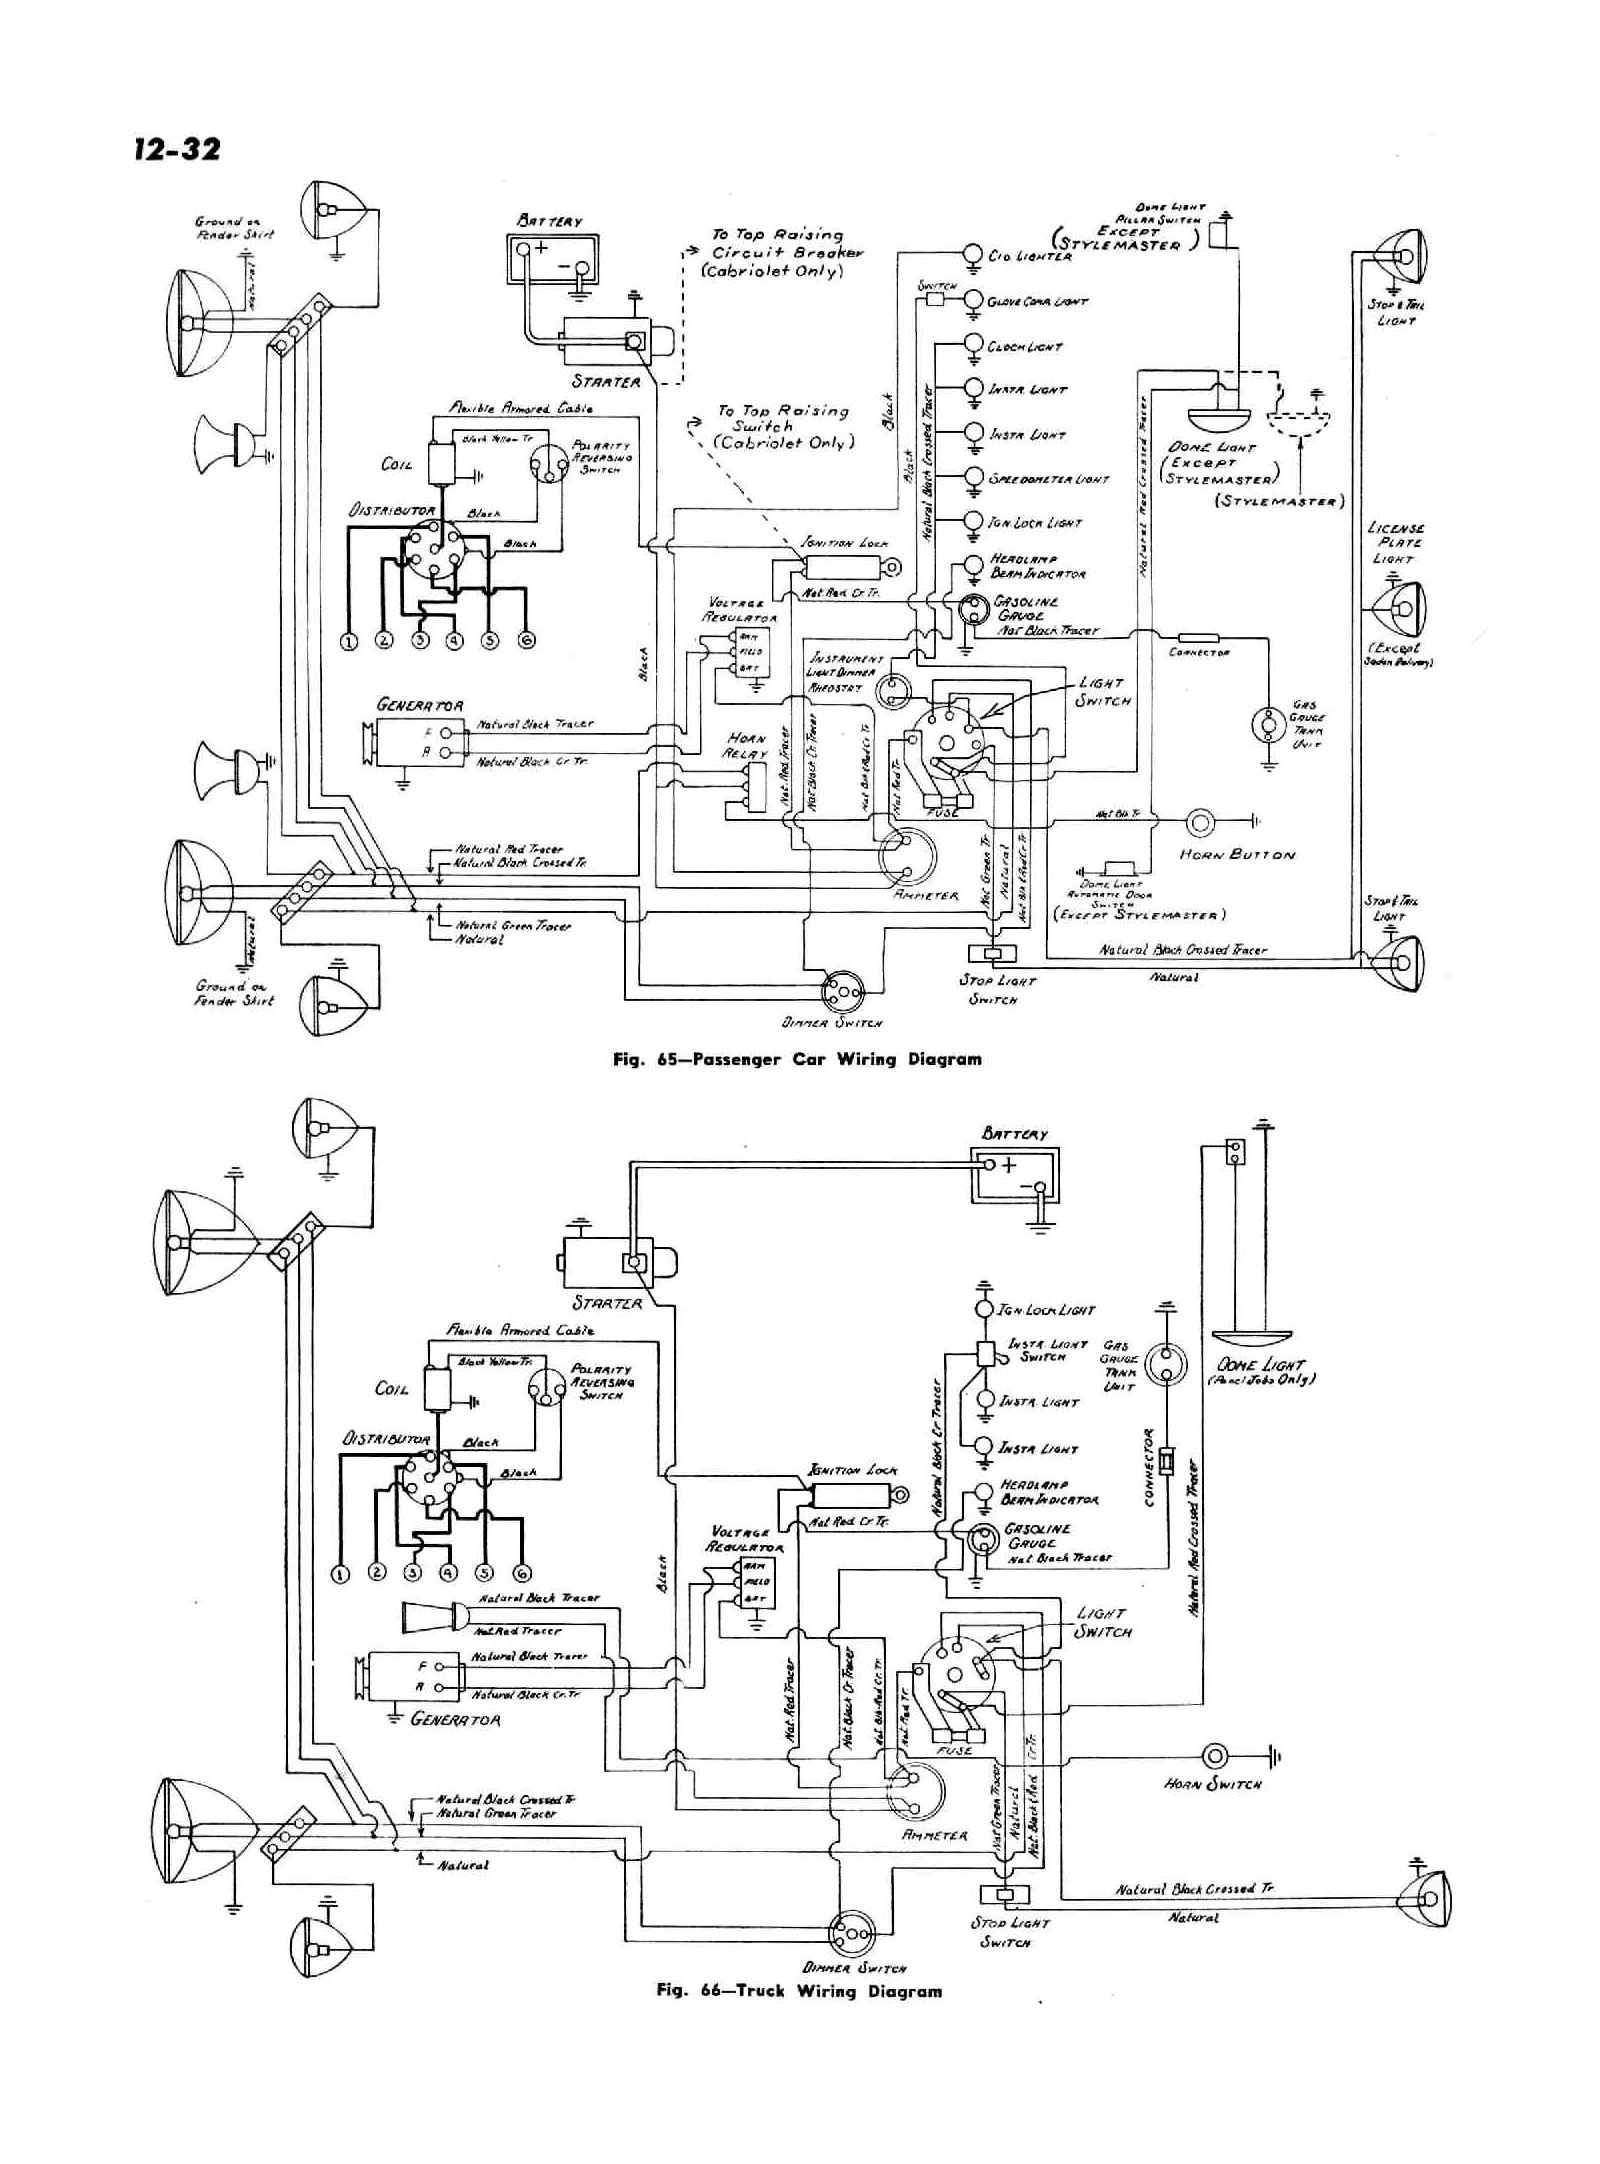 Wiring diagrams rh chevy oldcarmanualproject one wire alternator wiring diagram gm alternator wiring diagram